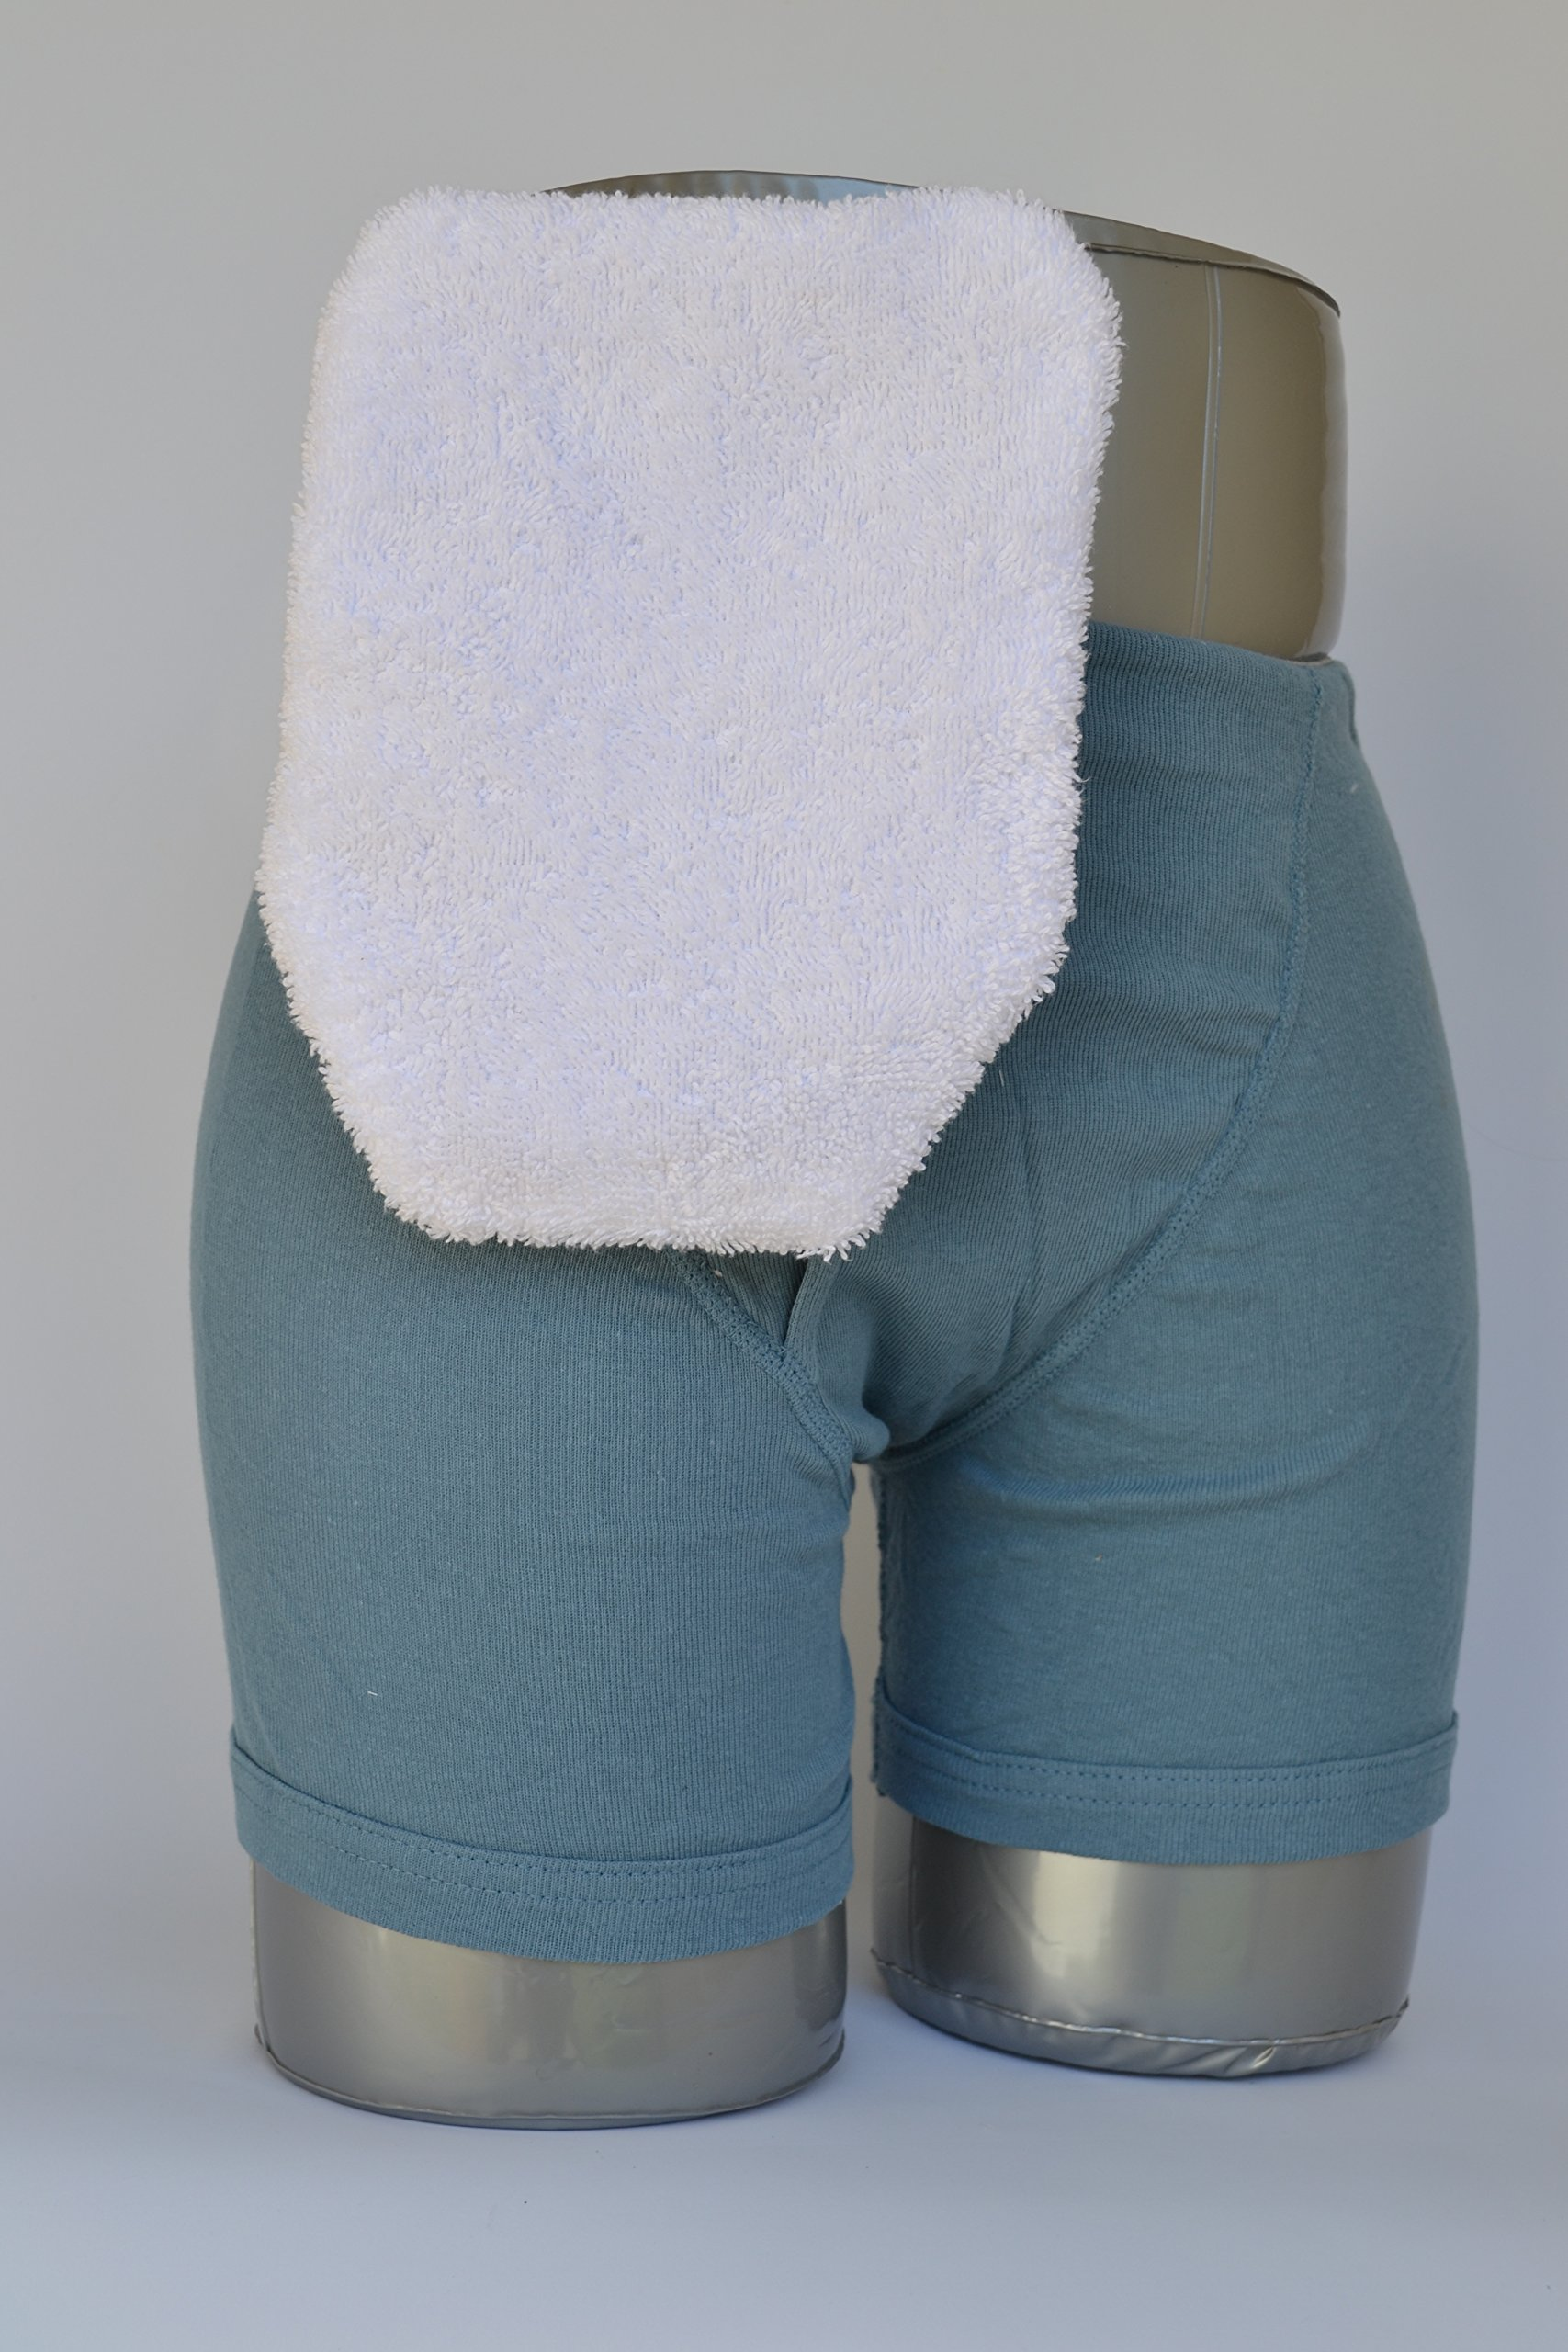 C & S Ostomy Pouch Covers Cx72749 Quick Dry Pouch Cover, Fits Flange Opening Of 3/4'' To 2-1/4'', Overall Length 9'', White Terry Cloth,C & S Ostomy Pouch Covers - Each 1